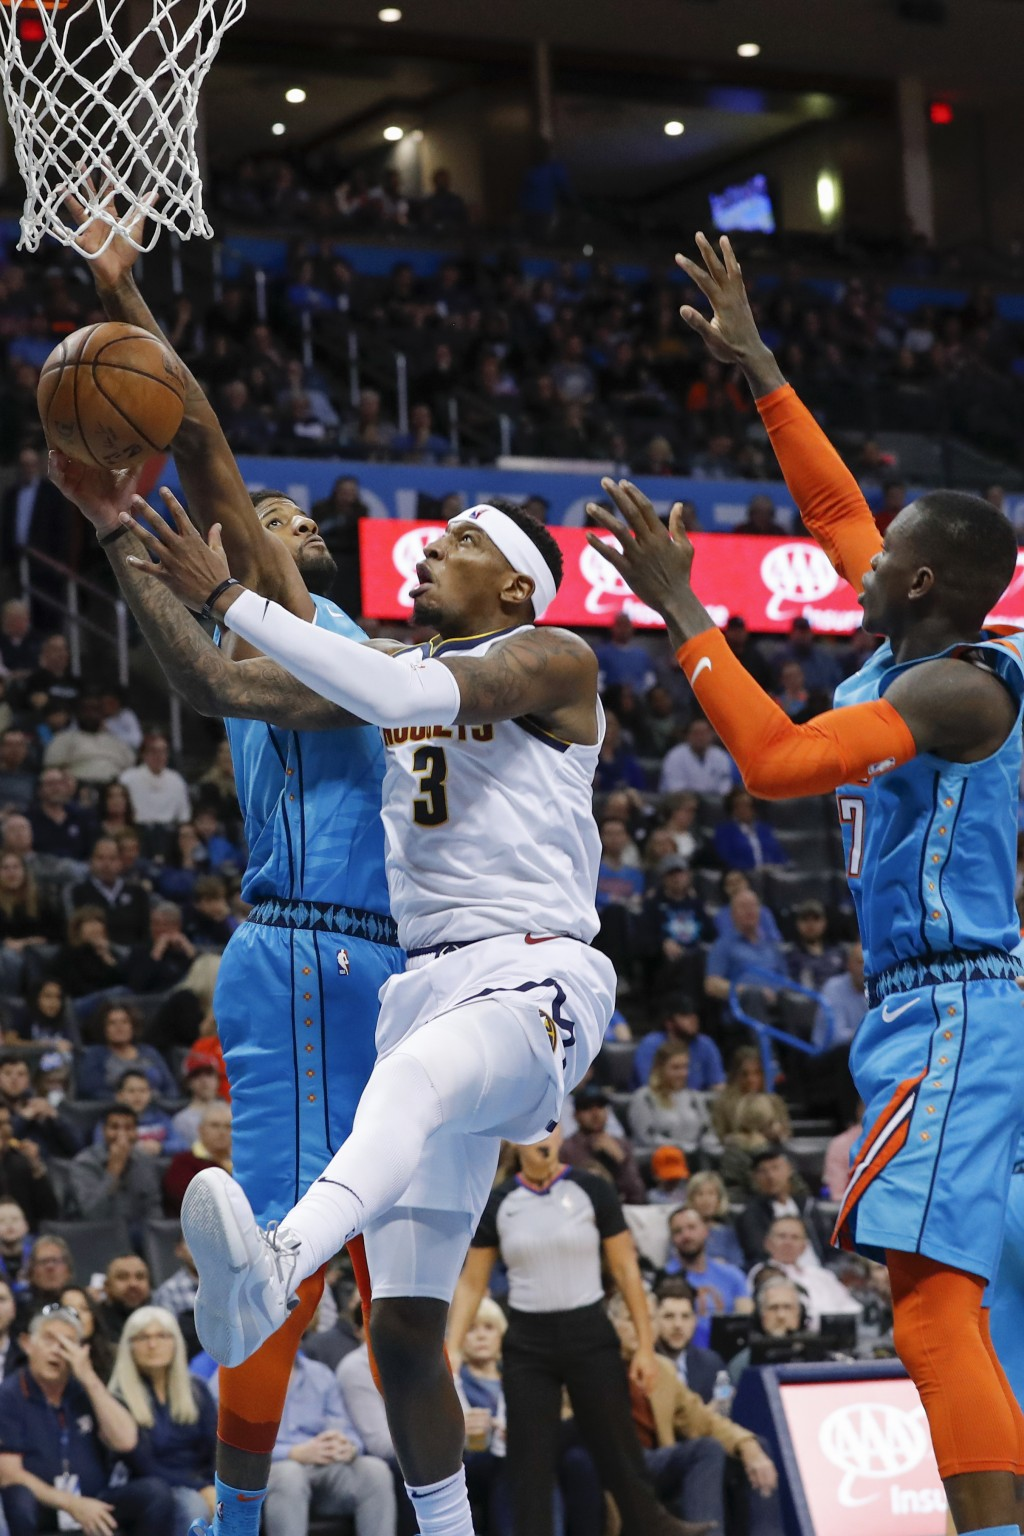 Denver Nuggets forward Torrey Craig (3) goes to the basket between Oklahoma City Thunder forward Paul George (13) and guard Dennis Schroder (17) durin